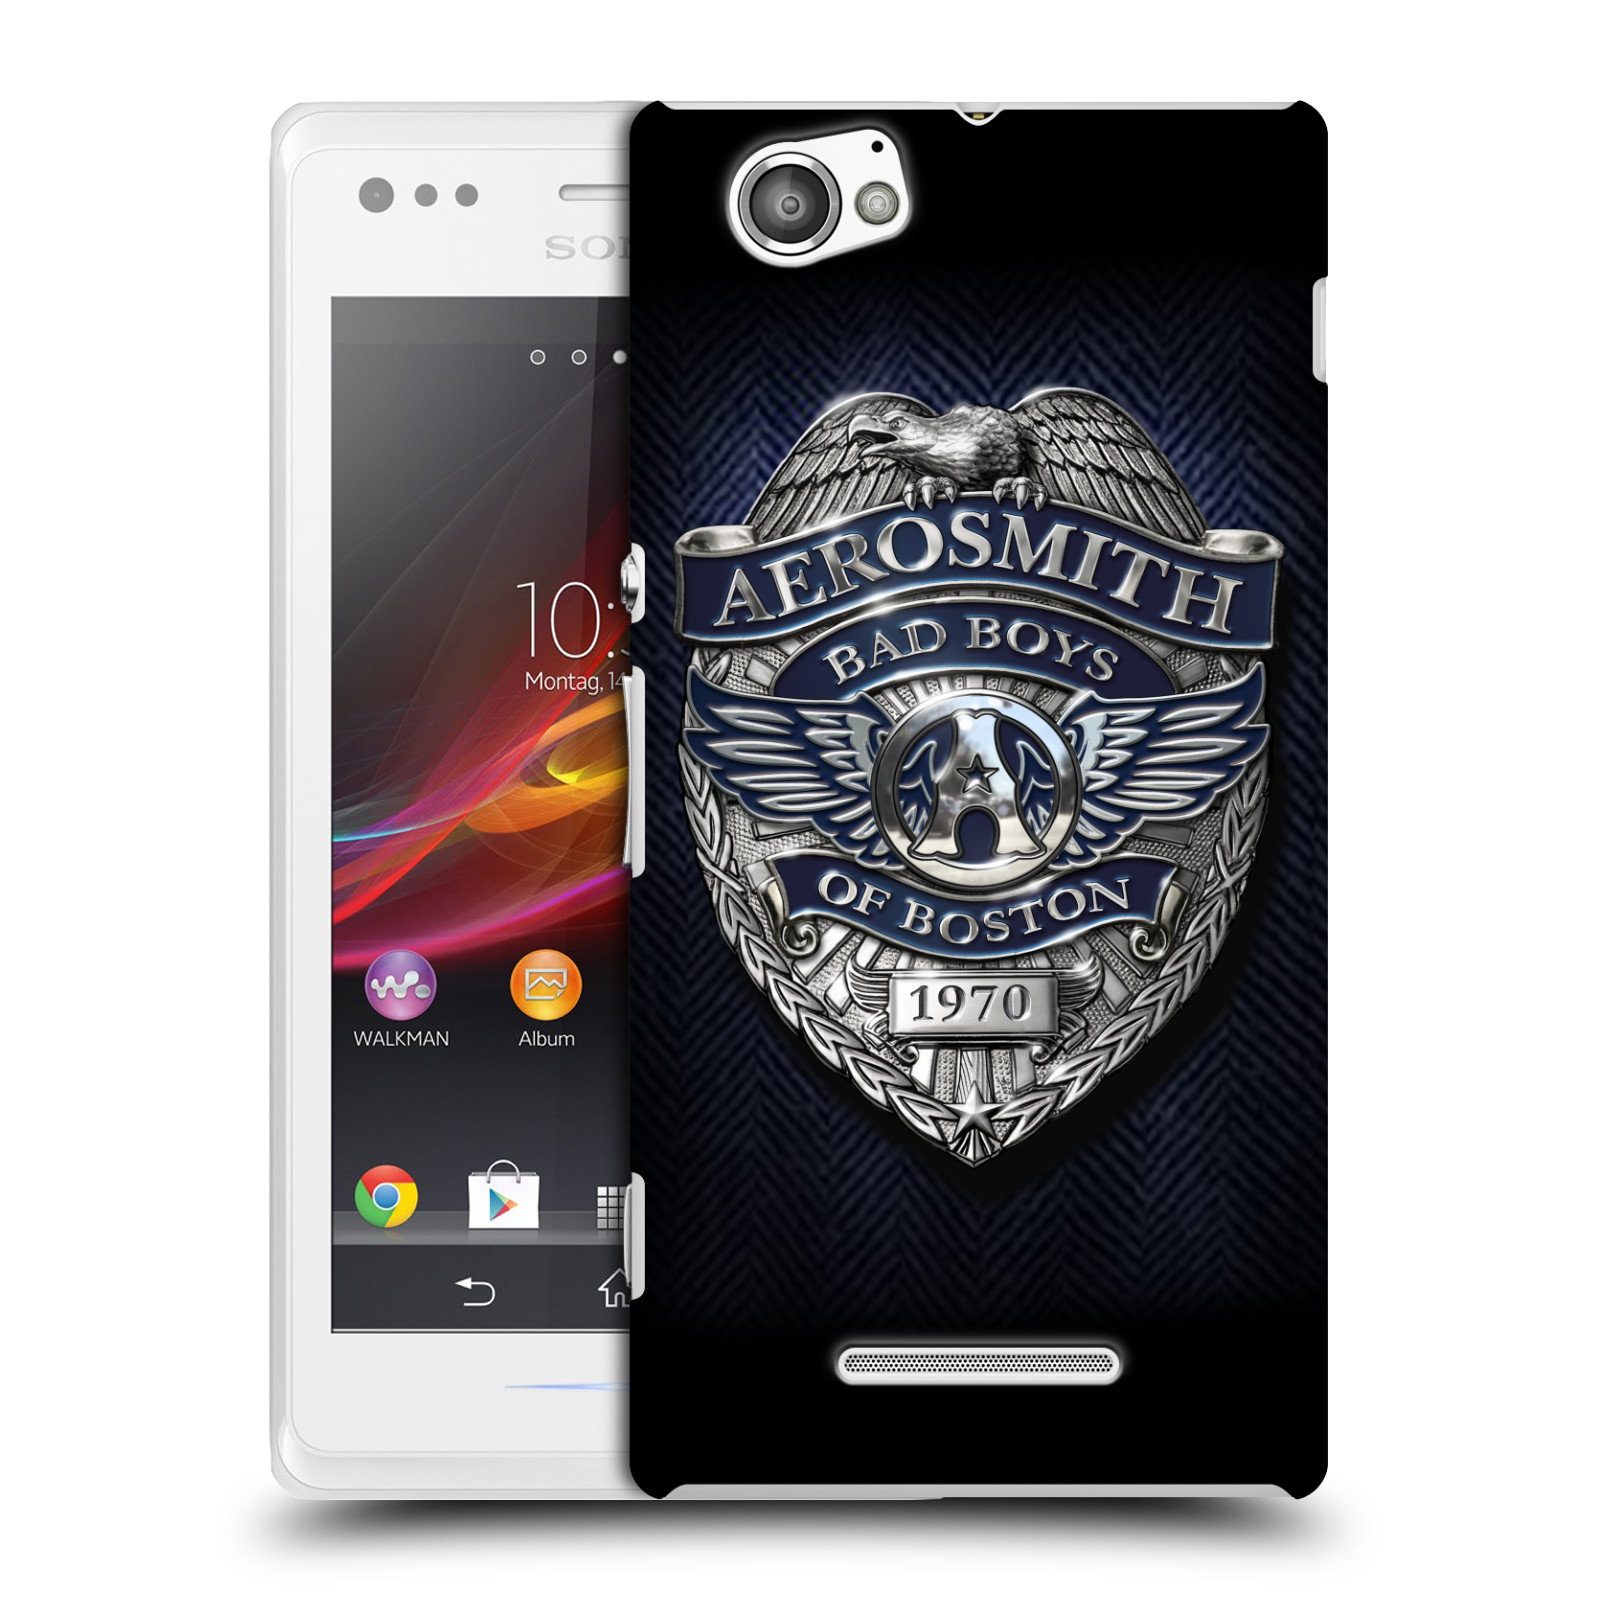 Plastové pouzdro na mobil Sony Xperia M C1905 HEAD CASE - Aerosmith - Bad Boys of Boston